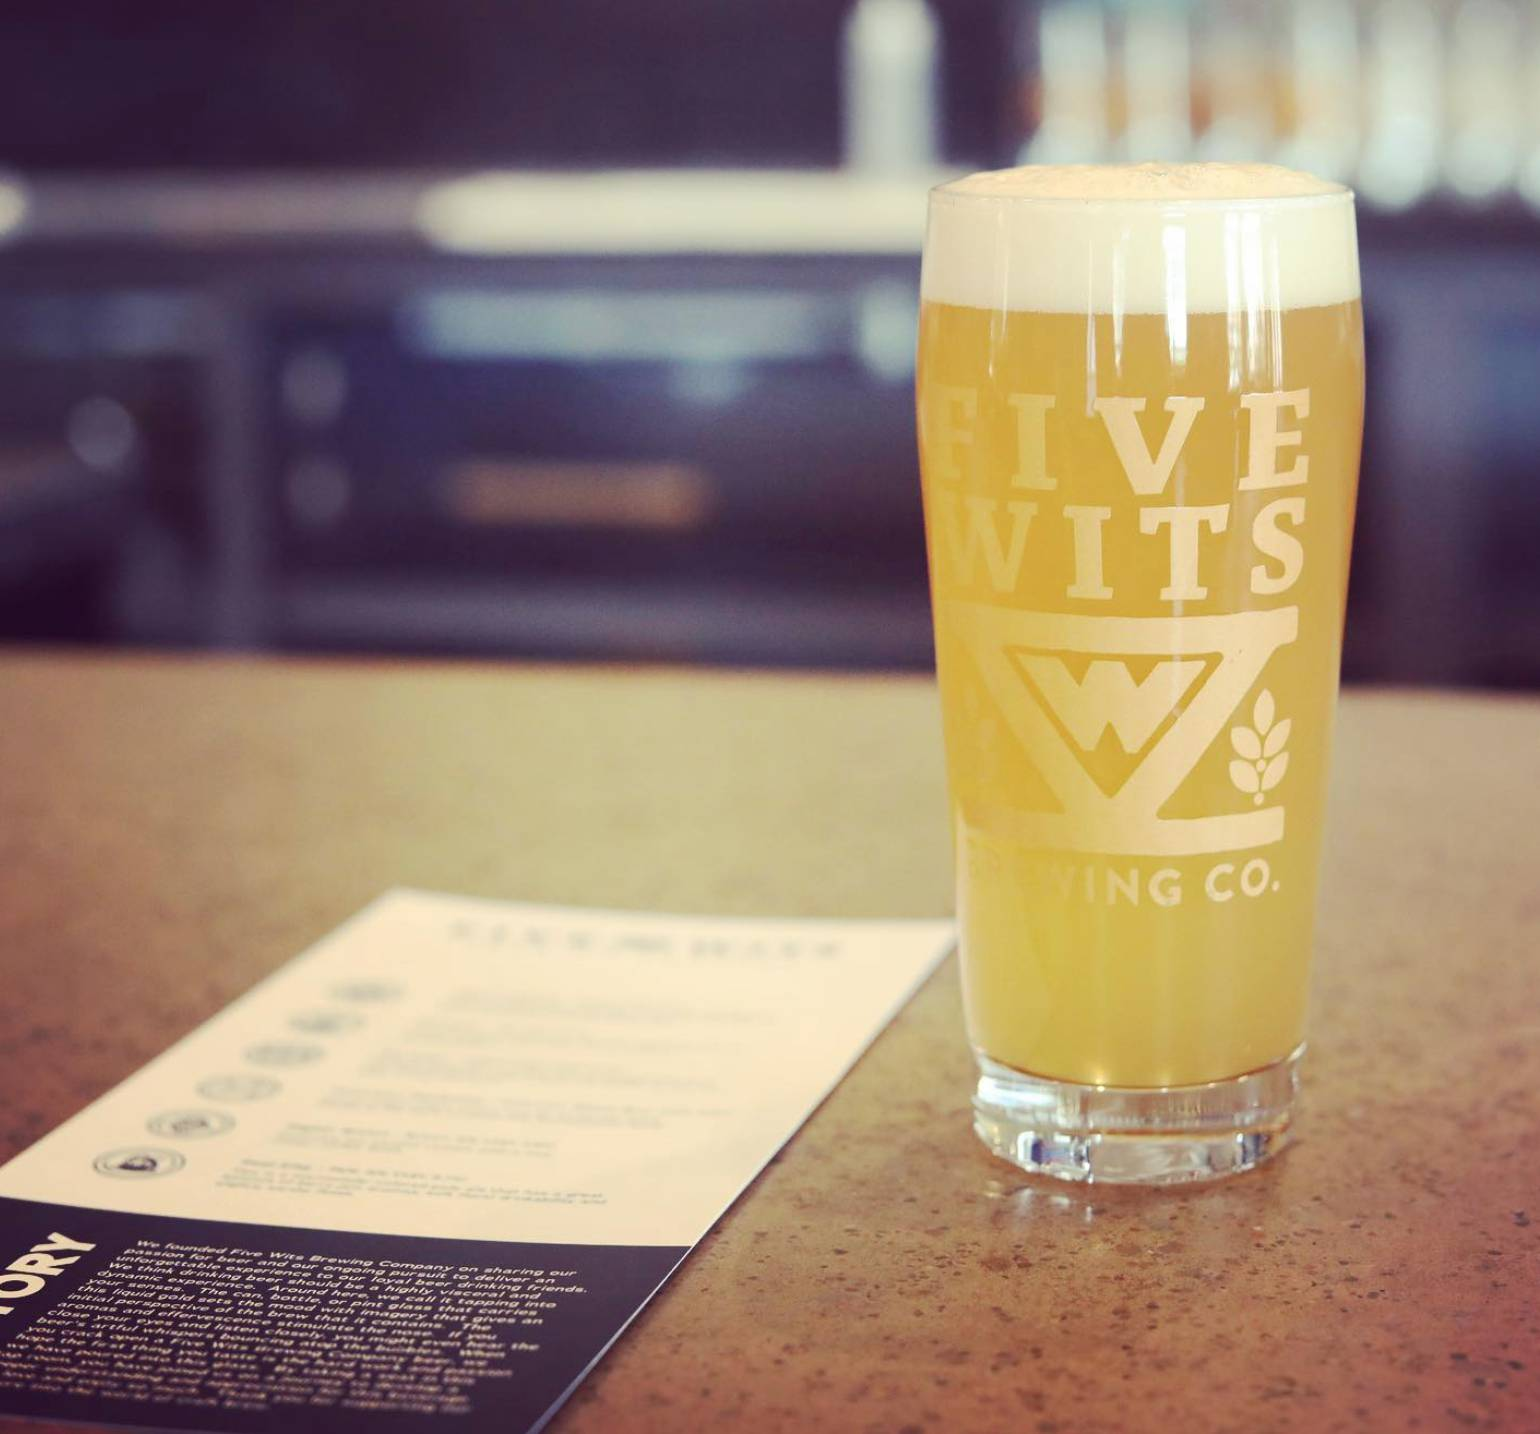 Growler Promo w/ Five Wits Brewing